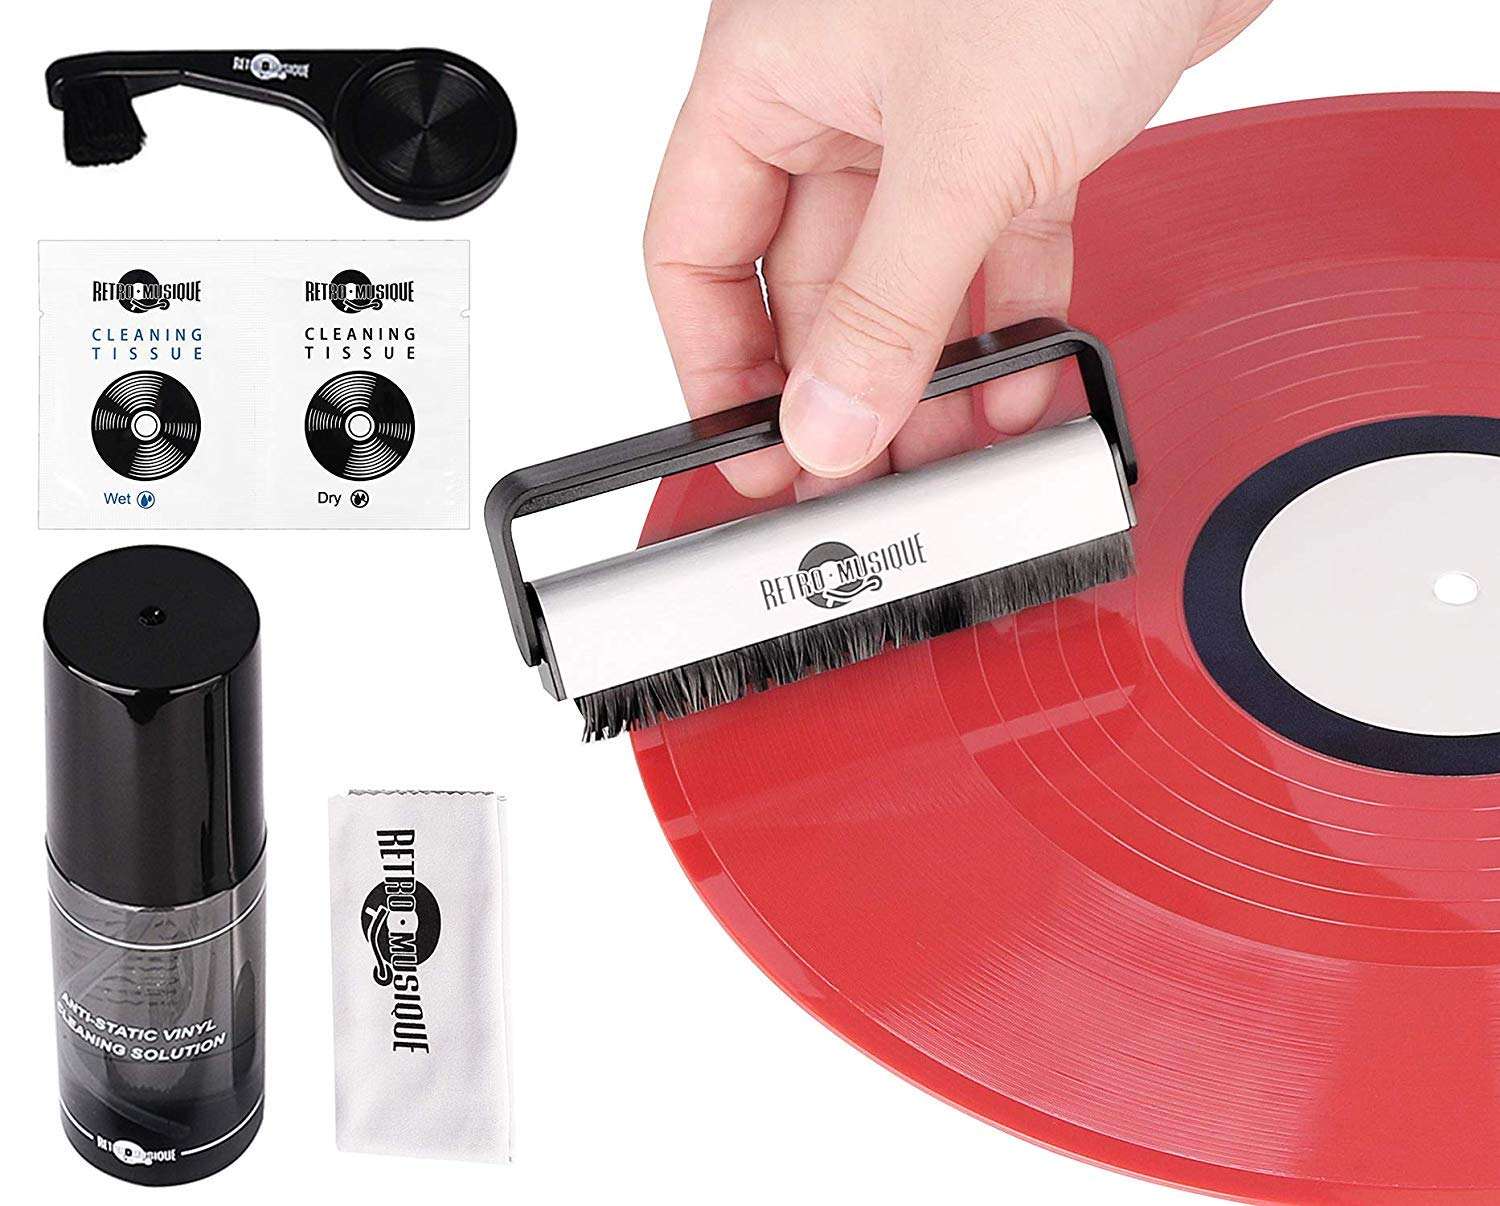 Vinyl Record Cleaning Kit-Record Cleaning Solution, Stylus Cleaner, Carbon and Velvet Brush & Microfiber Cloth-Keep your Vinyl Collection LPs like New